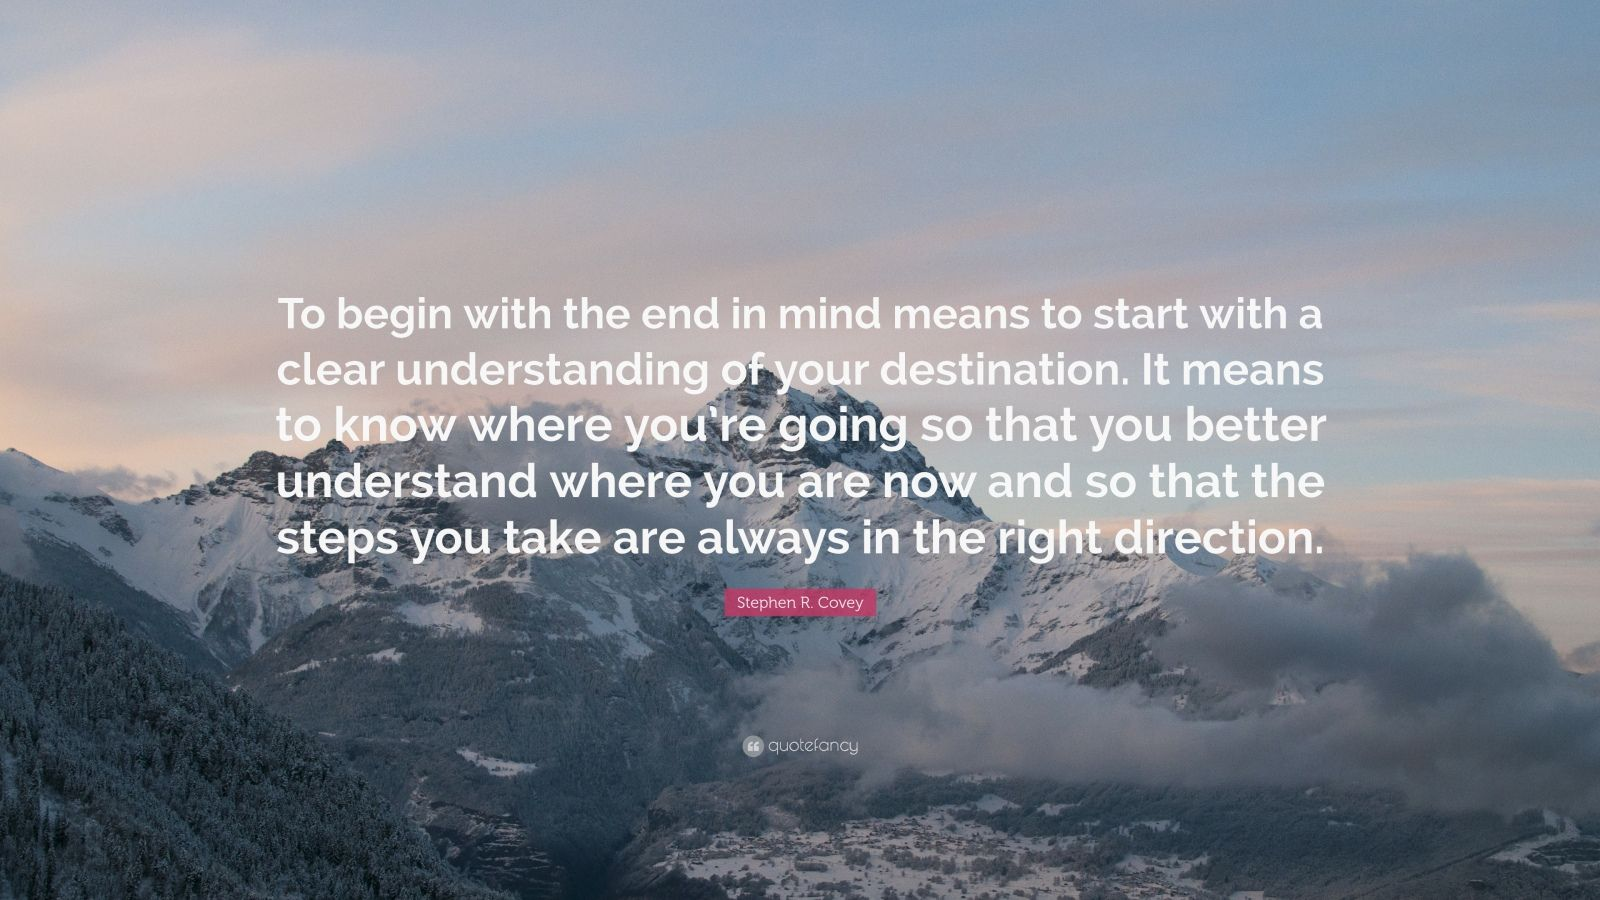 """Stephen R. Covey Quote: """"To begin with the end in mind means to start with a clear understanding of your destination. It means to know where you're going so that you better understand where you are now and so that the steps you take are always in the right direction."""""""